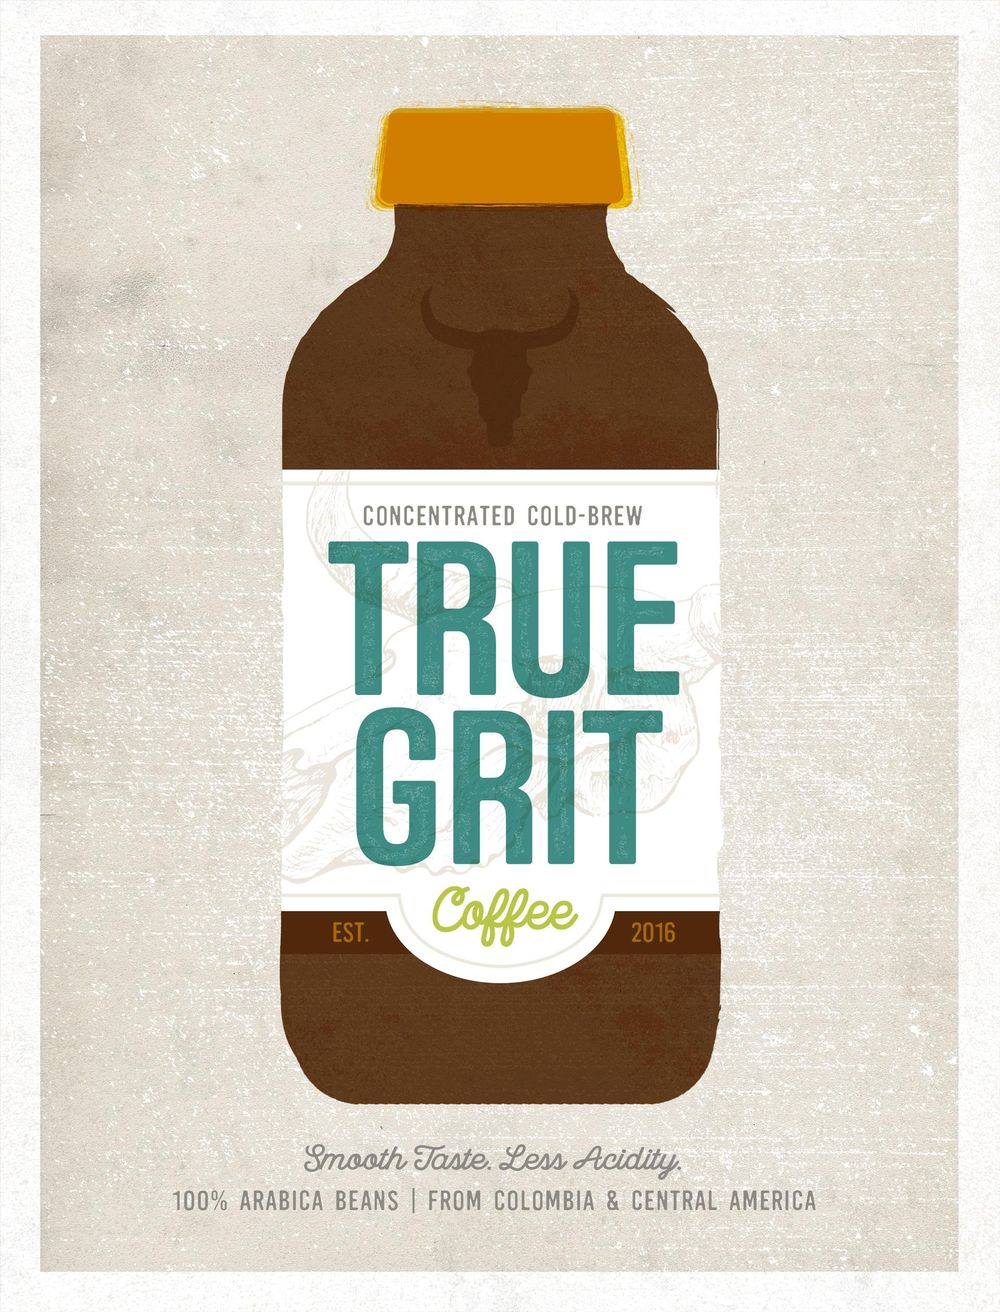 True Grit Coffee - image 2 - student project